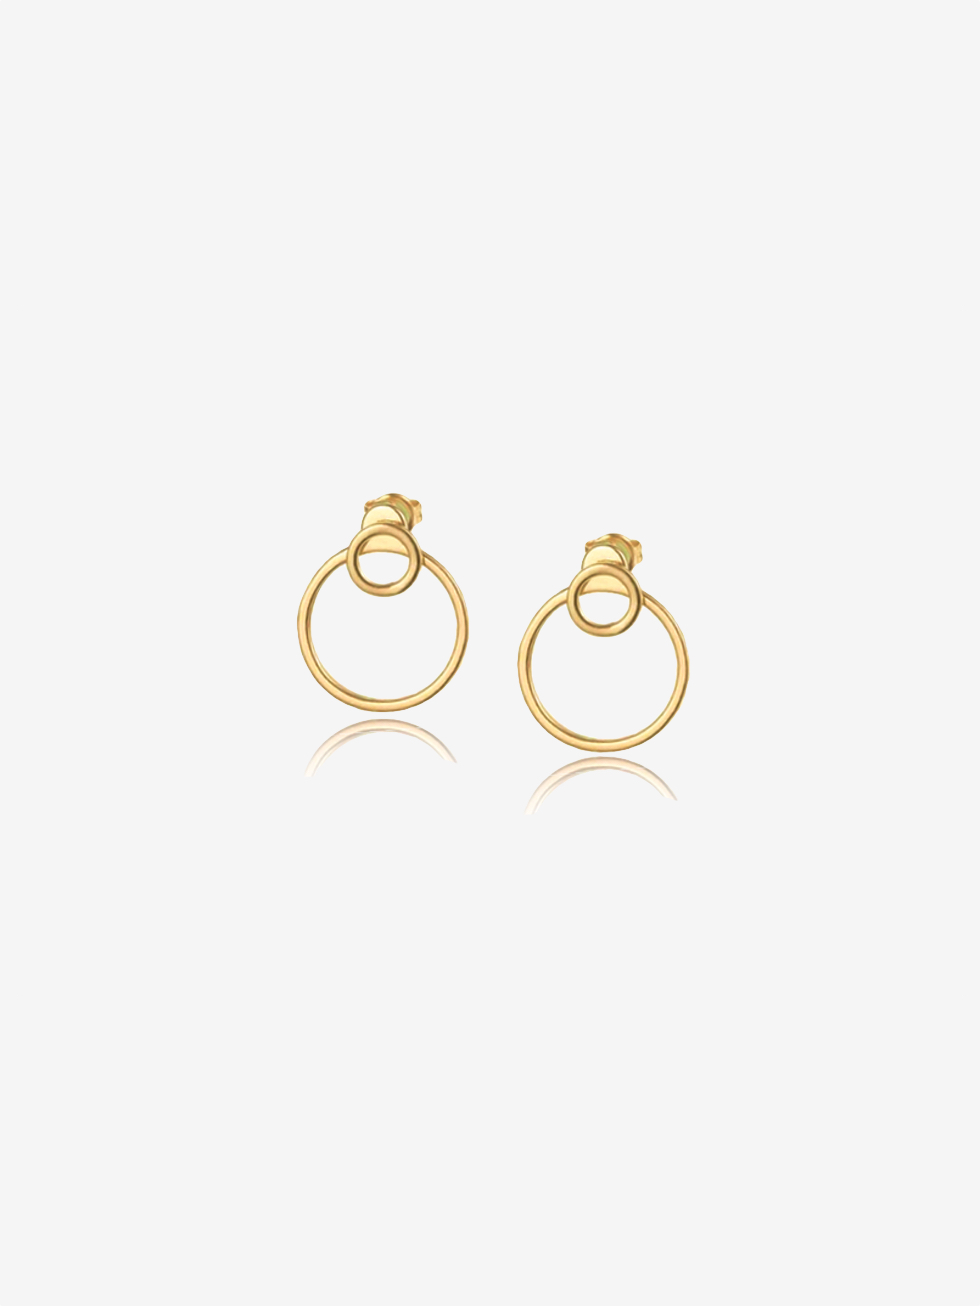 DOBLE CIRCULO gold earrings